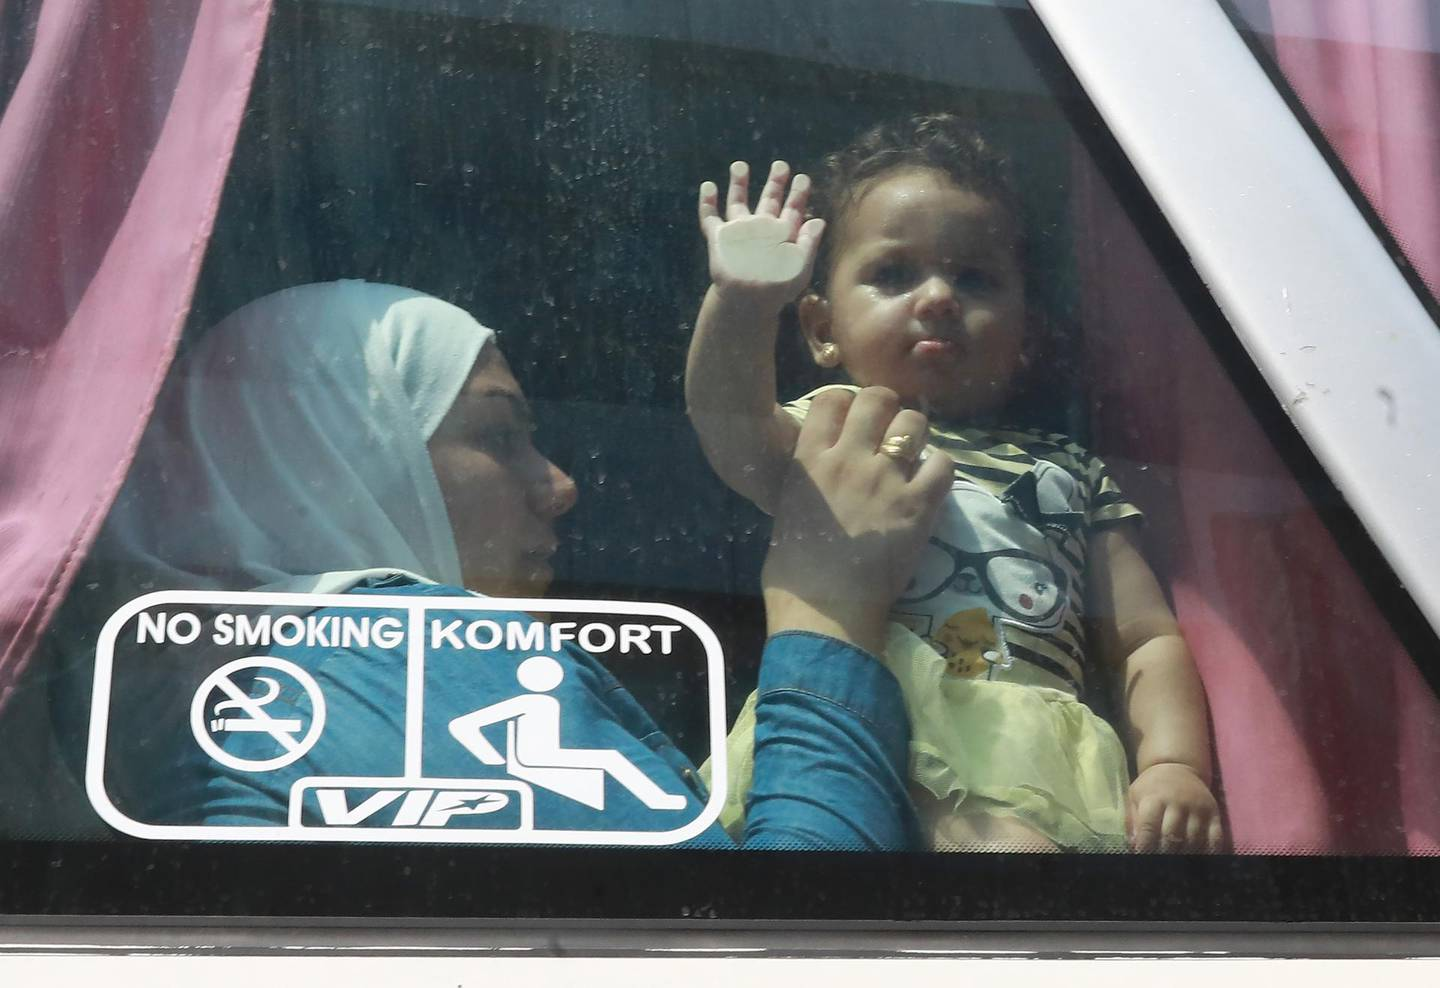 Syrian refugee Umm Luay, 30, sits with her child inside a bus on September 17, 2018  she return with her family to Syrian after living as refugees in Lebanon for years. In 2012, Rawad Kurdi and his 35 relatives were forced to flee their hometown of Babila southeast of Damascus after fighting broke out between rebels and government forces.  They came to Lebanon. Three years later, some of the elderly family members including Rawad's father Ahmad returned to Syria, and more have hit the road home since.   / AFP / ANWAR AMRO